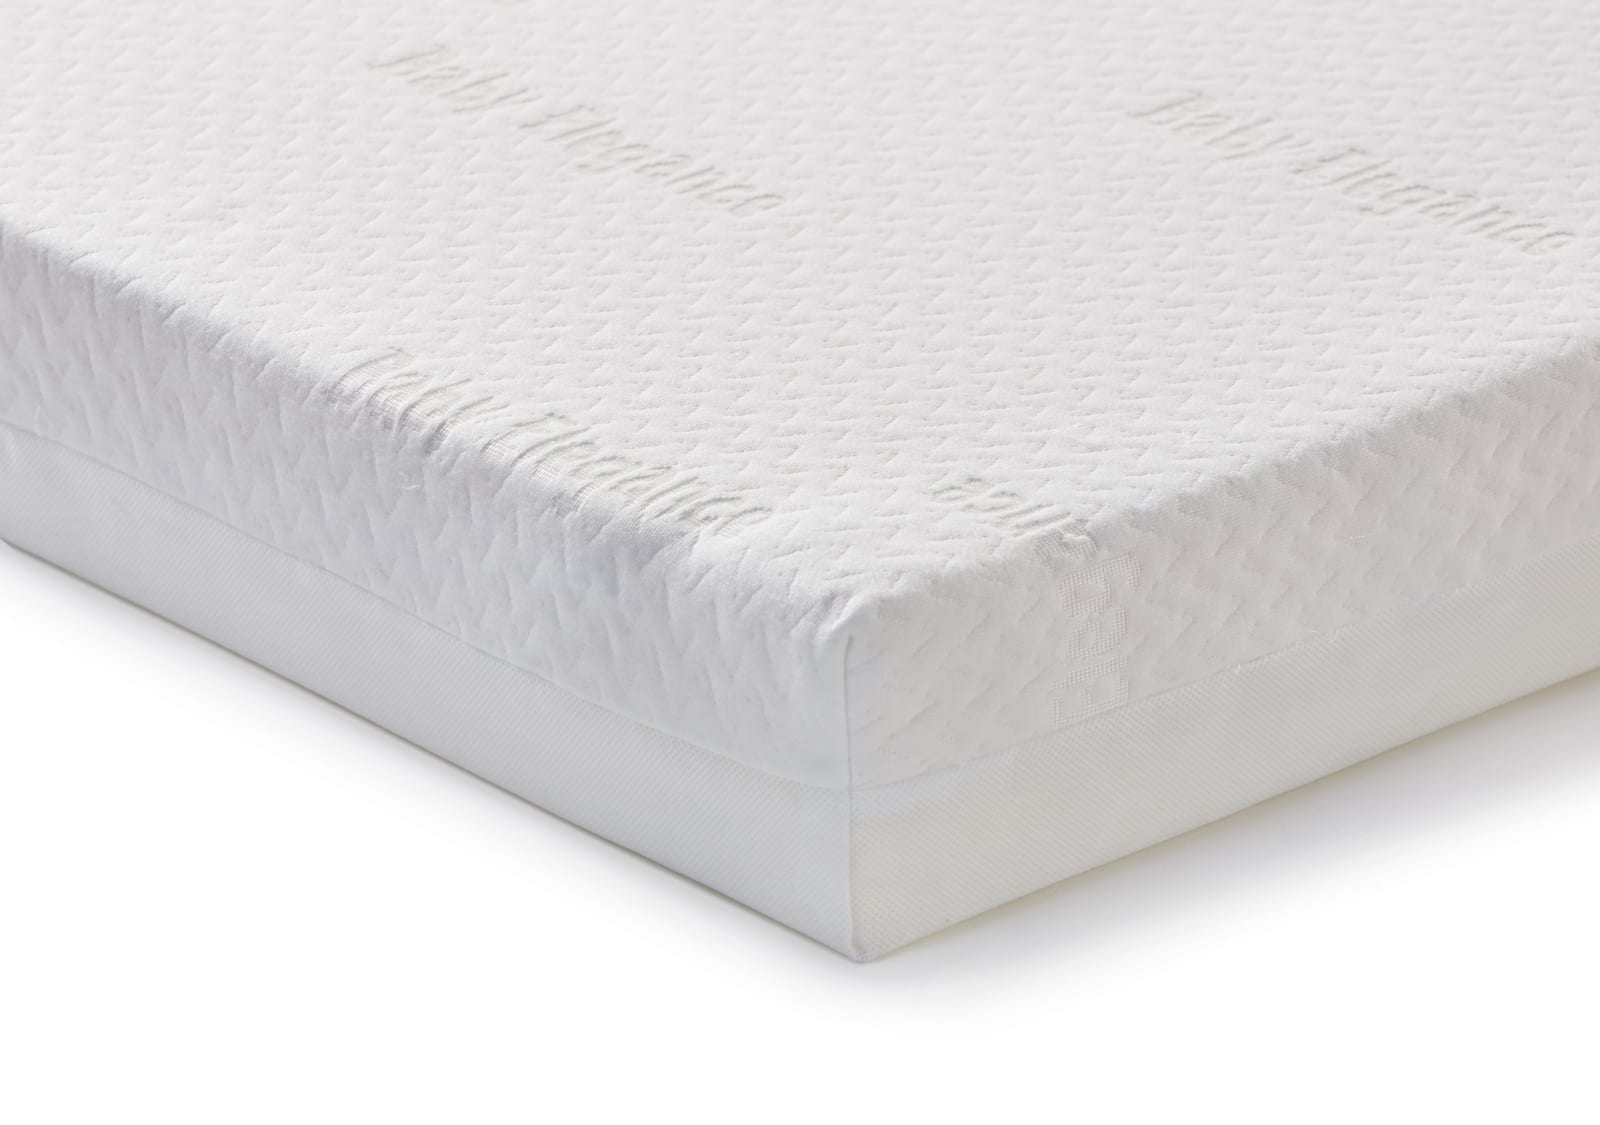 Memory Foam Mattress – Cot Bed – 70x140x10cm product image